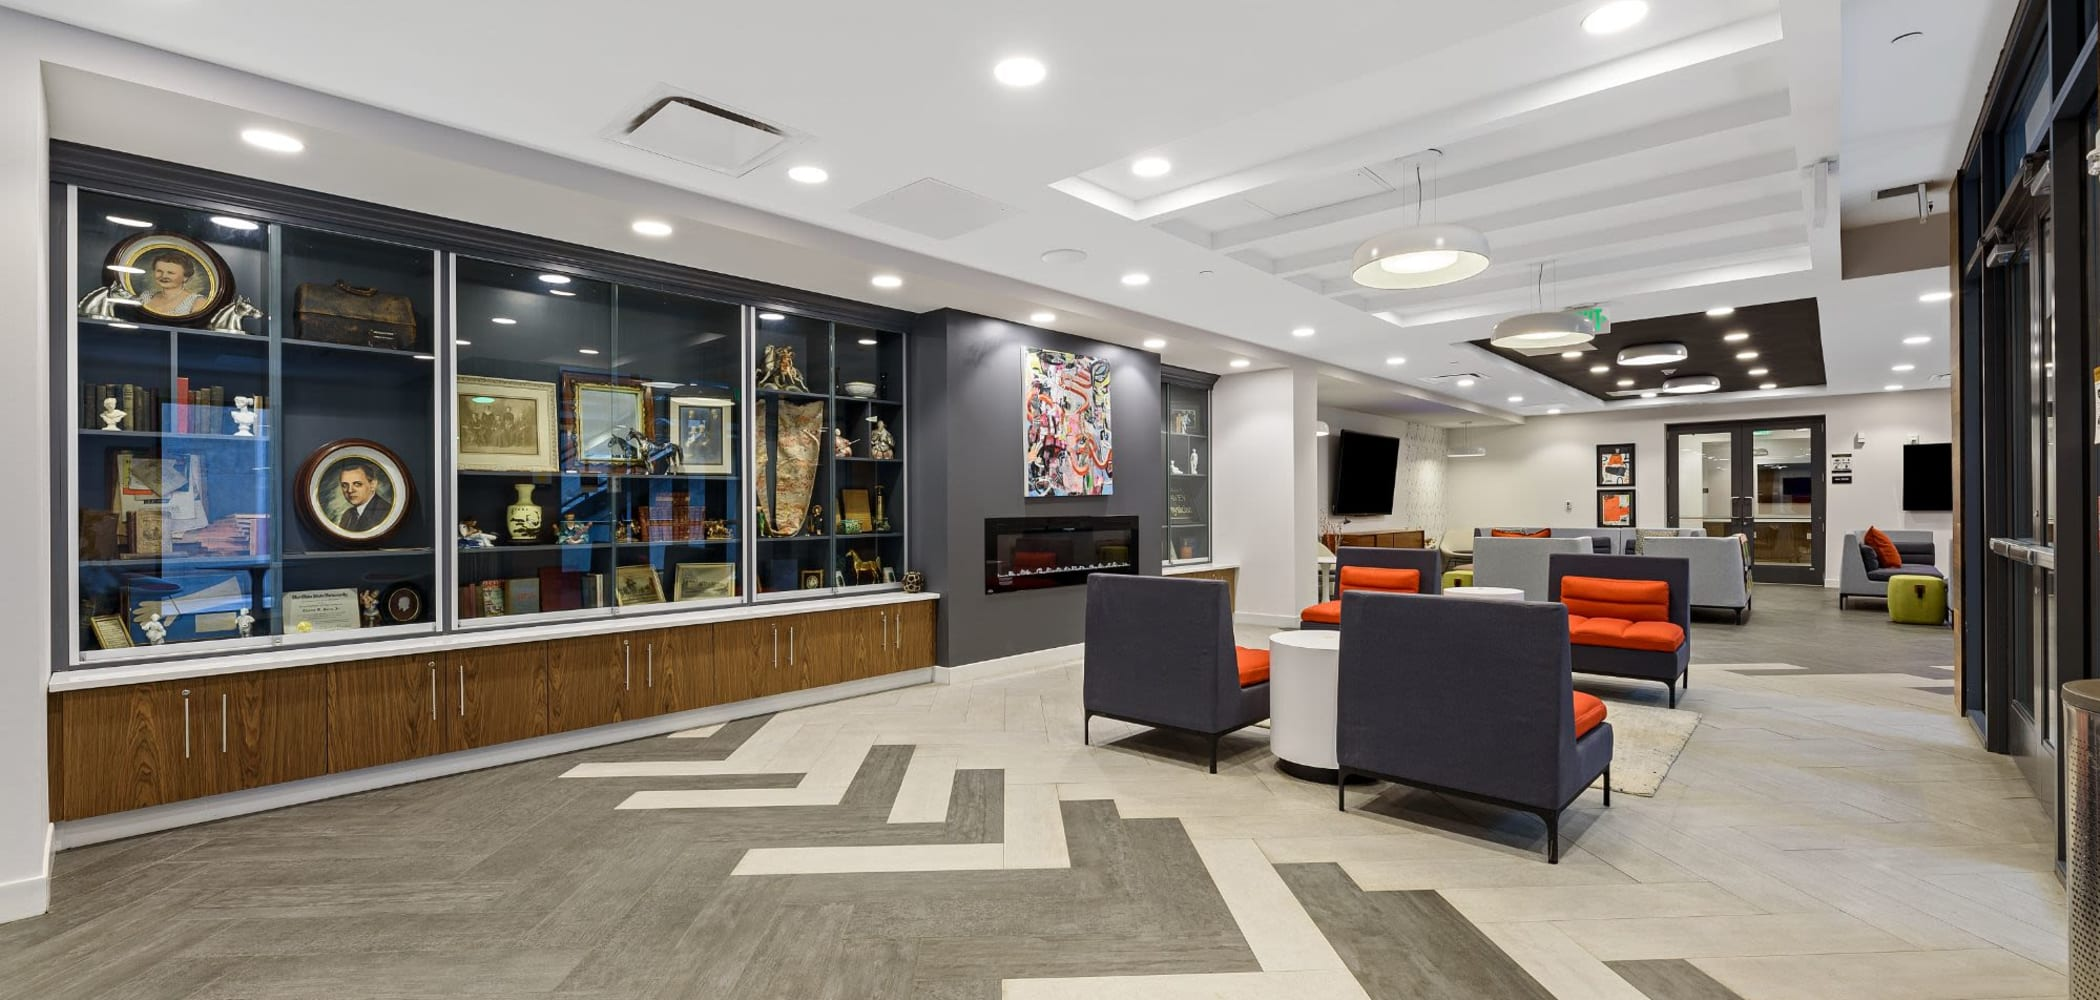 Lounge area for students to work, study, or hang out in at The View on Pavey Square in Columbus, Ohio